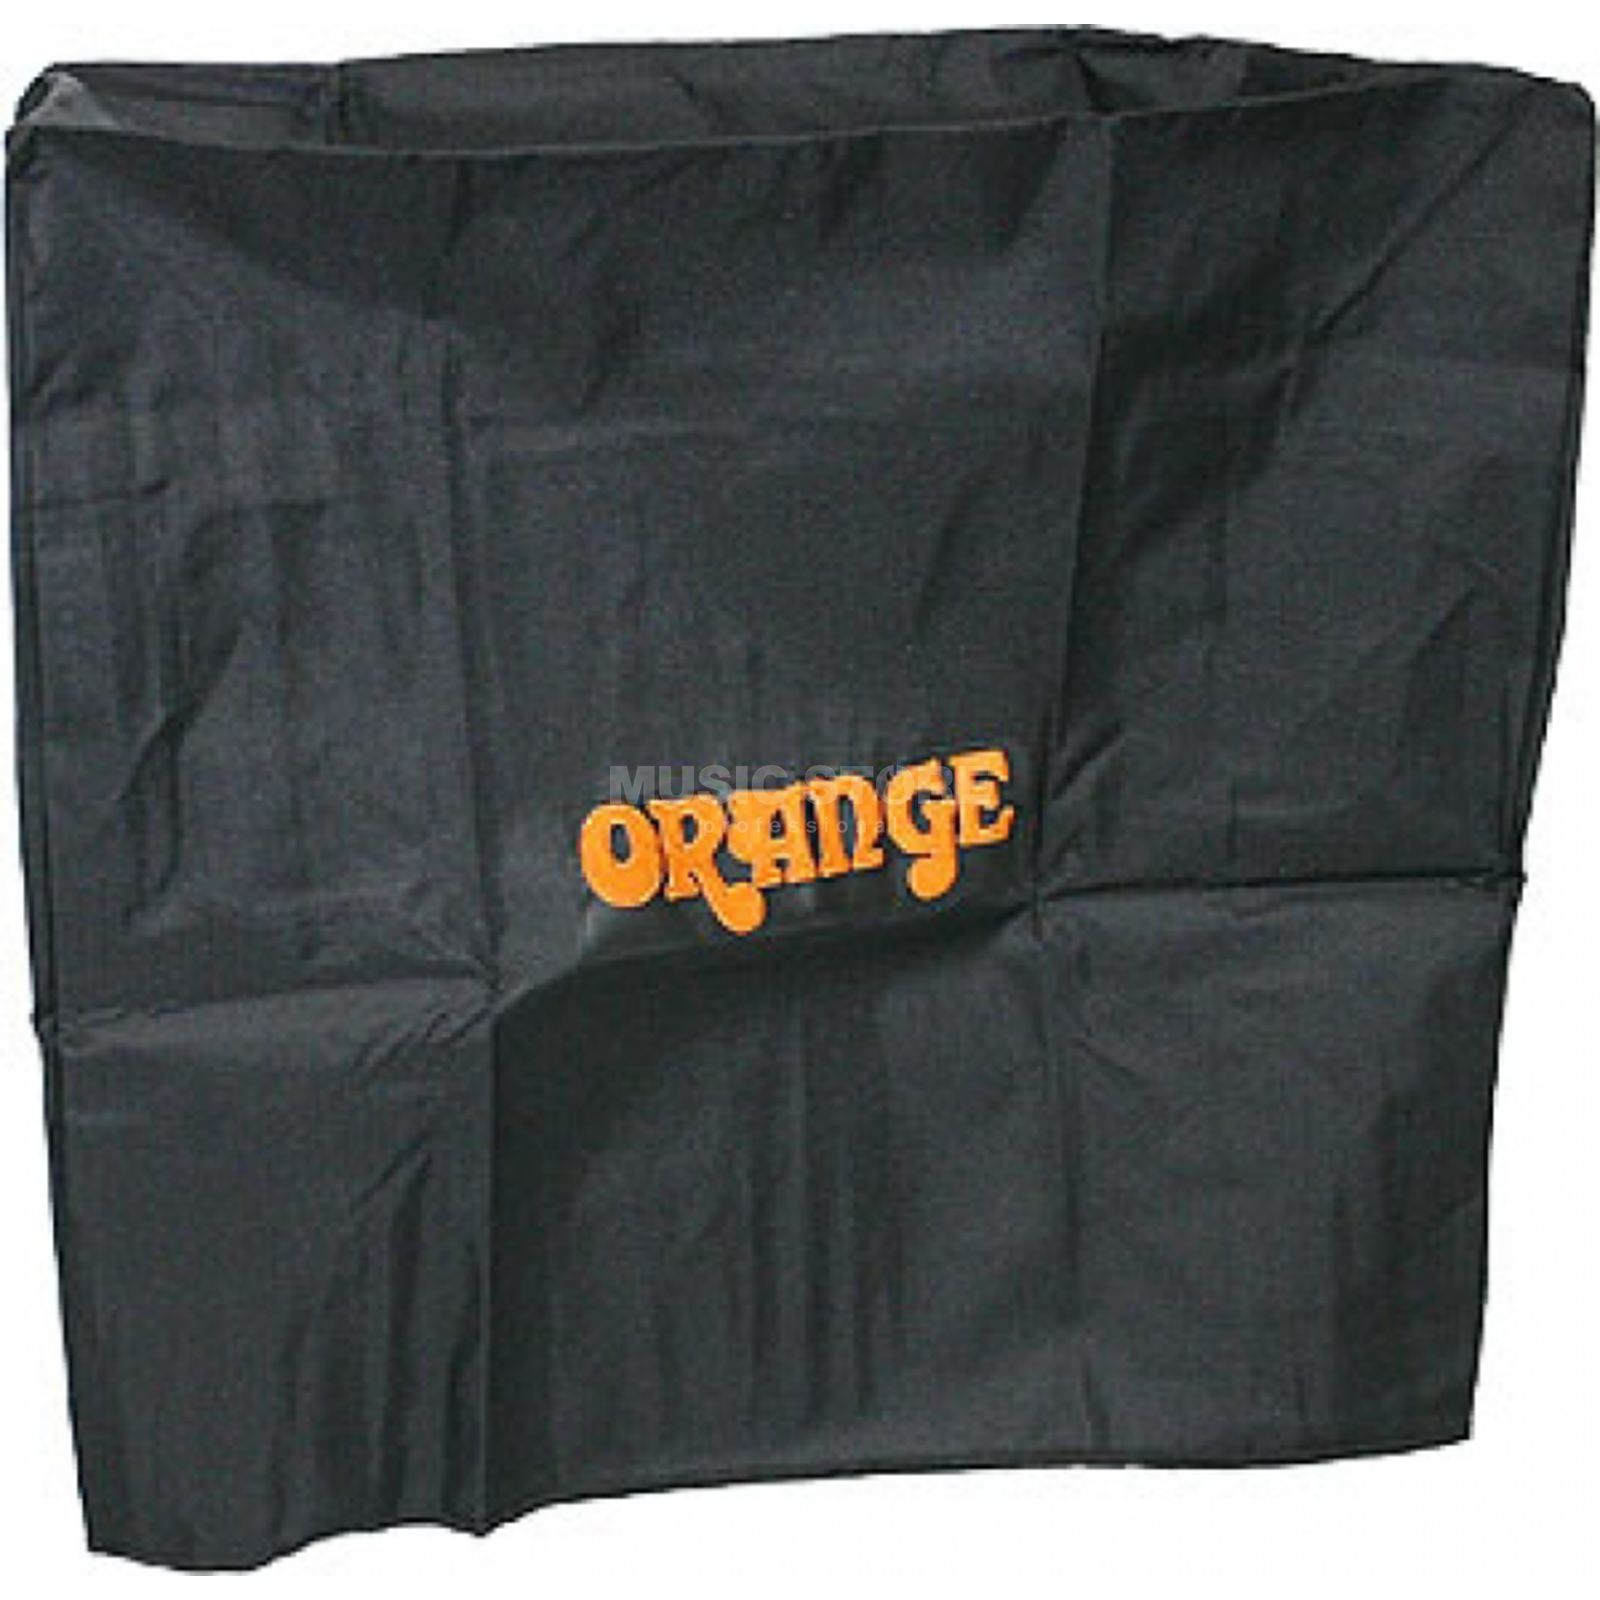 Orange Baffle Cover OBC 810 Image du produit